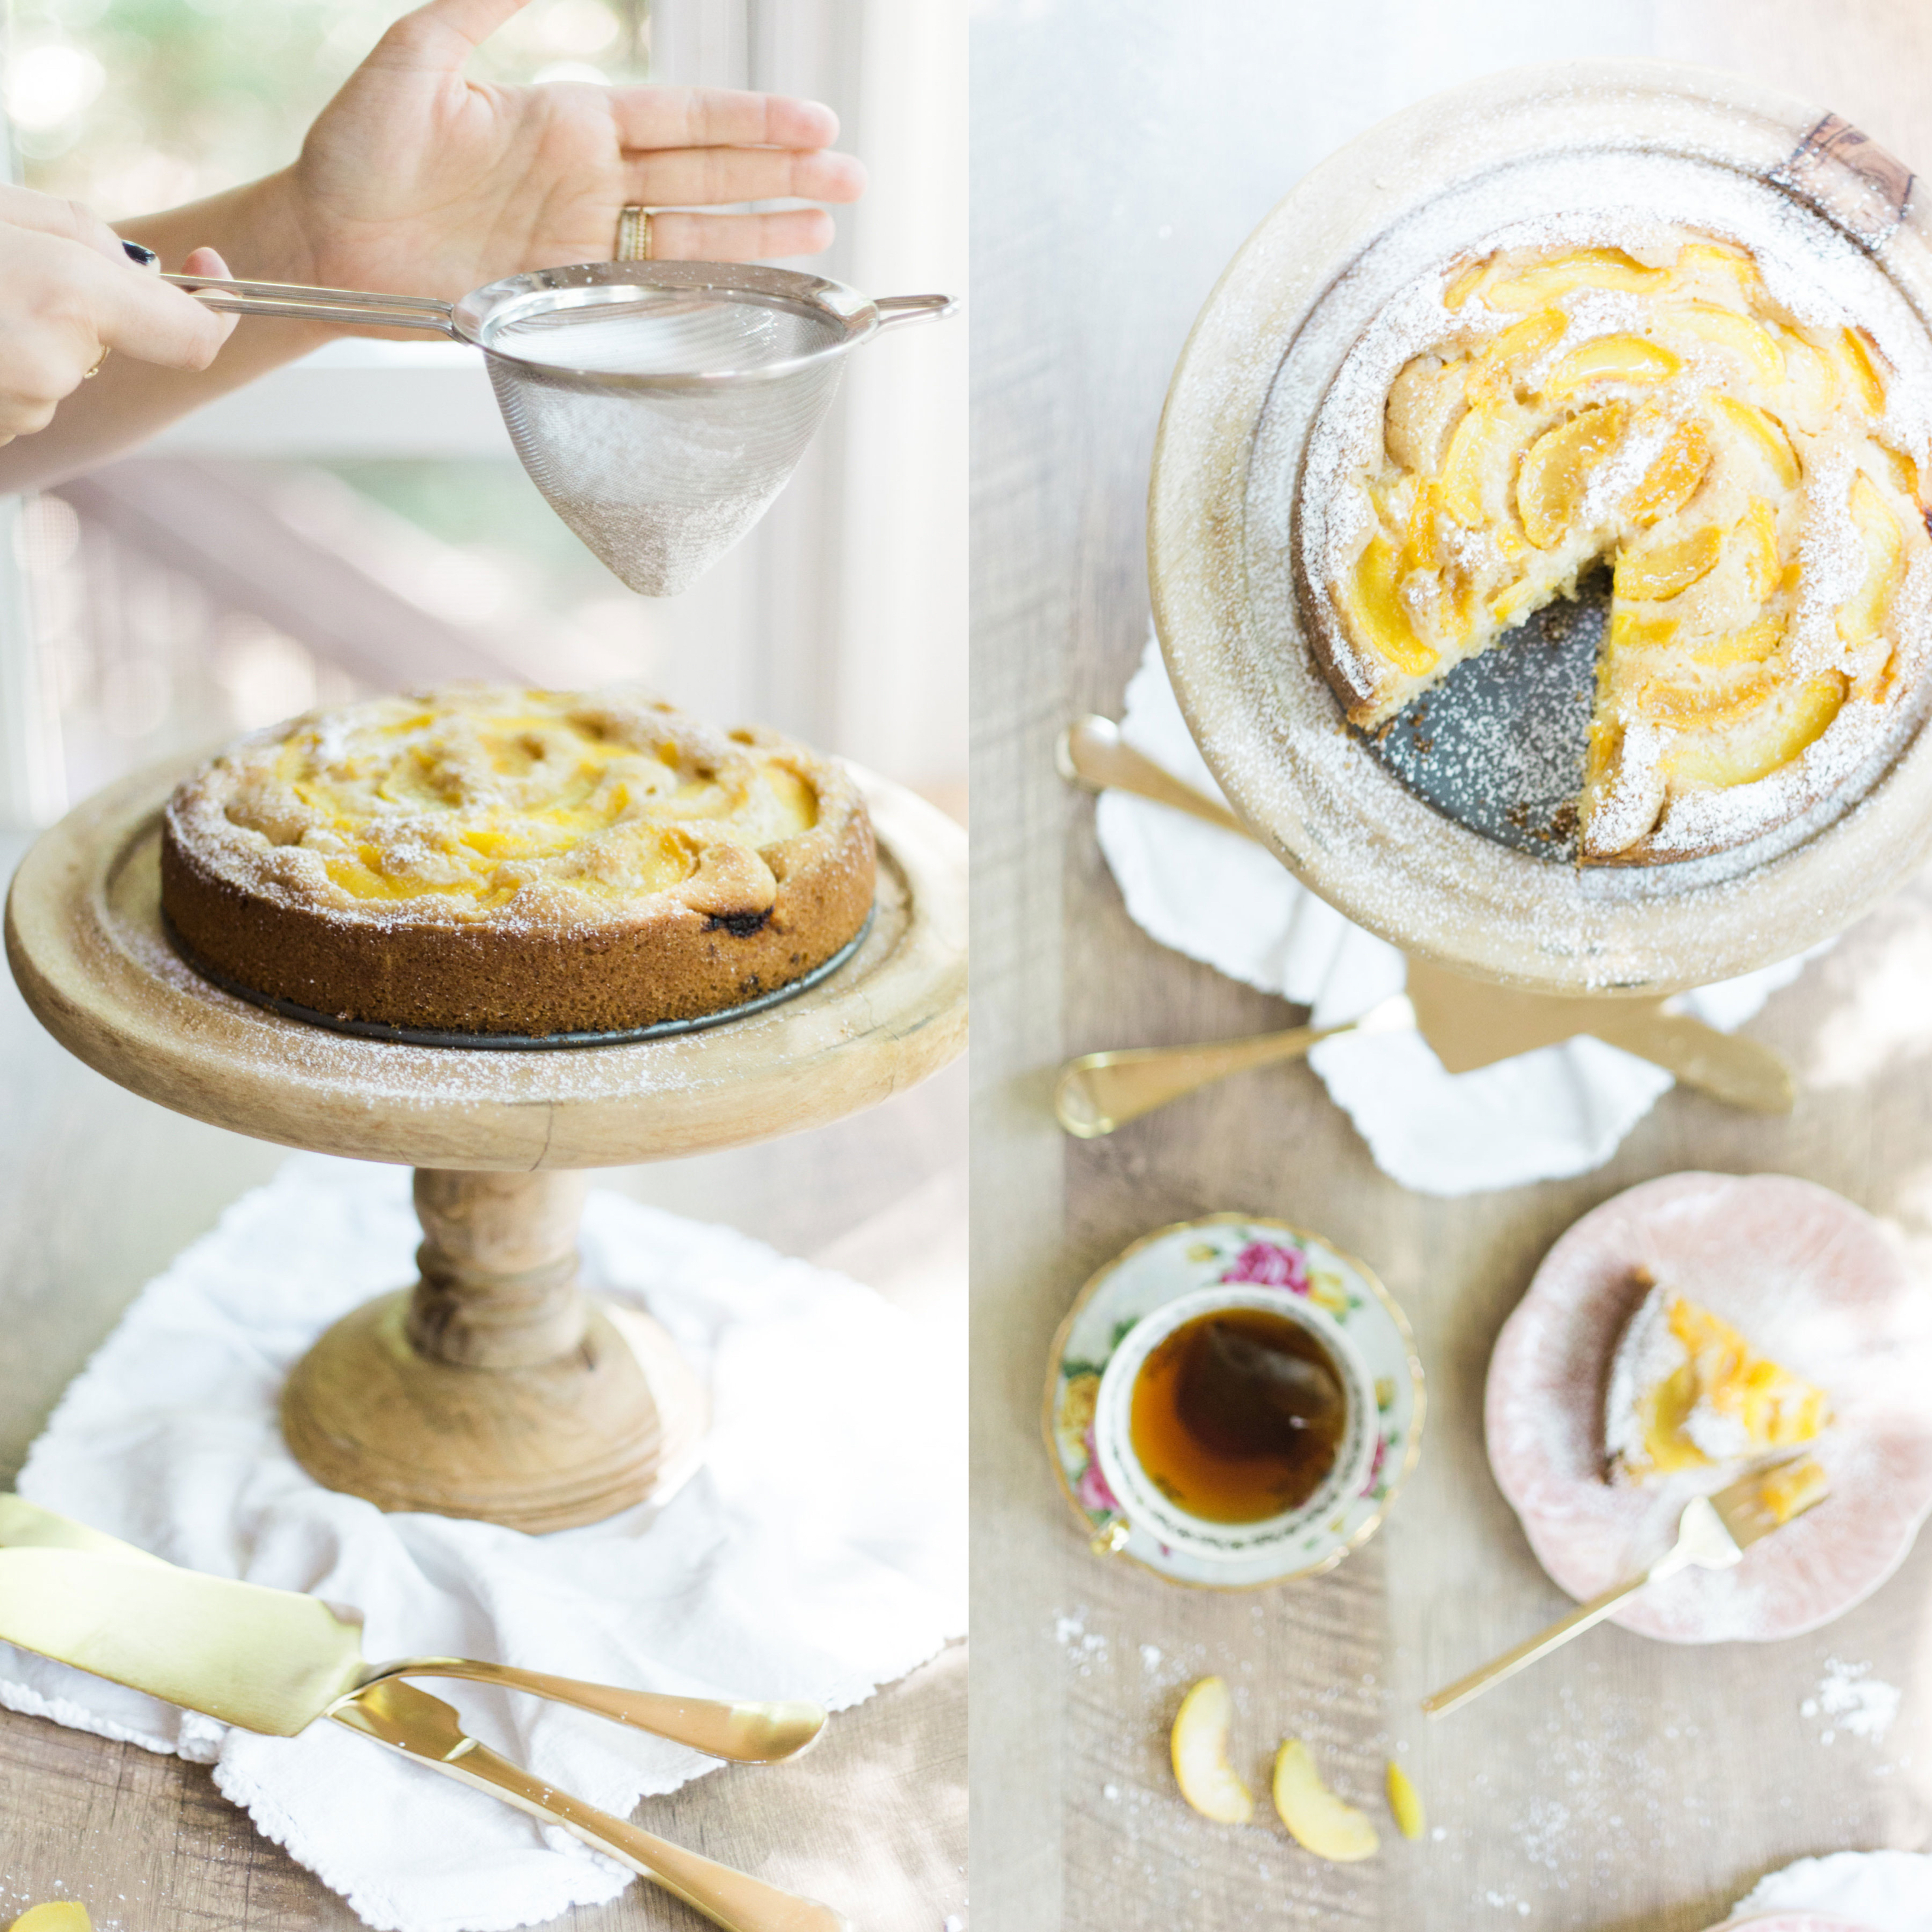 How to Make The Perfect Peach Cake (Seriously, I can't stop making this blissfuly subtle cake.)